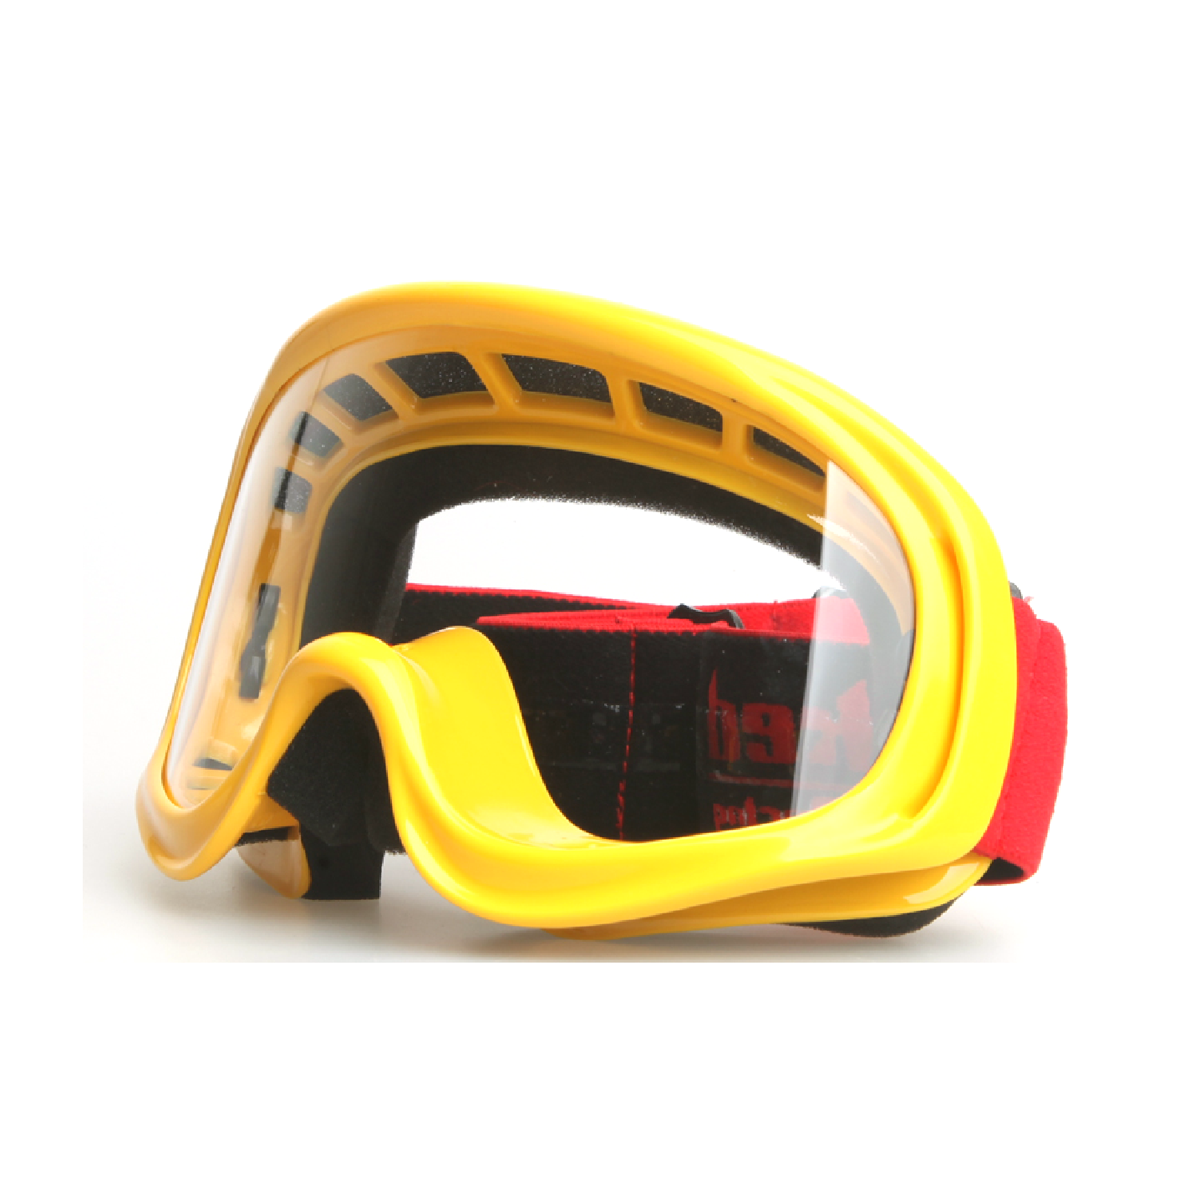 Tanks motocross goggles goggles wind and sand glasses goggles downhill mountain bike